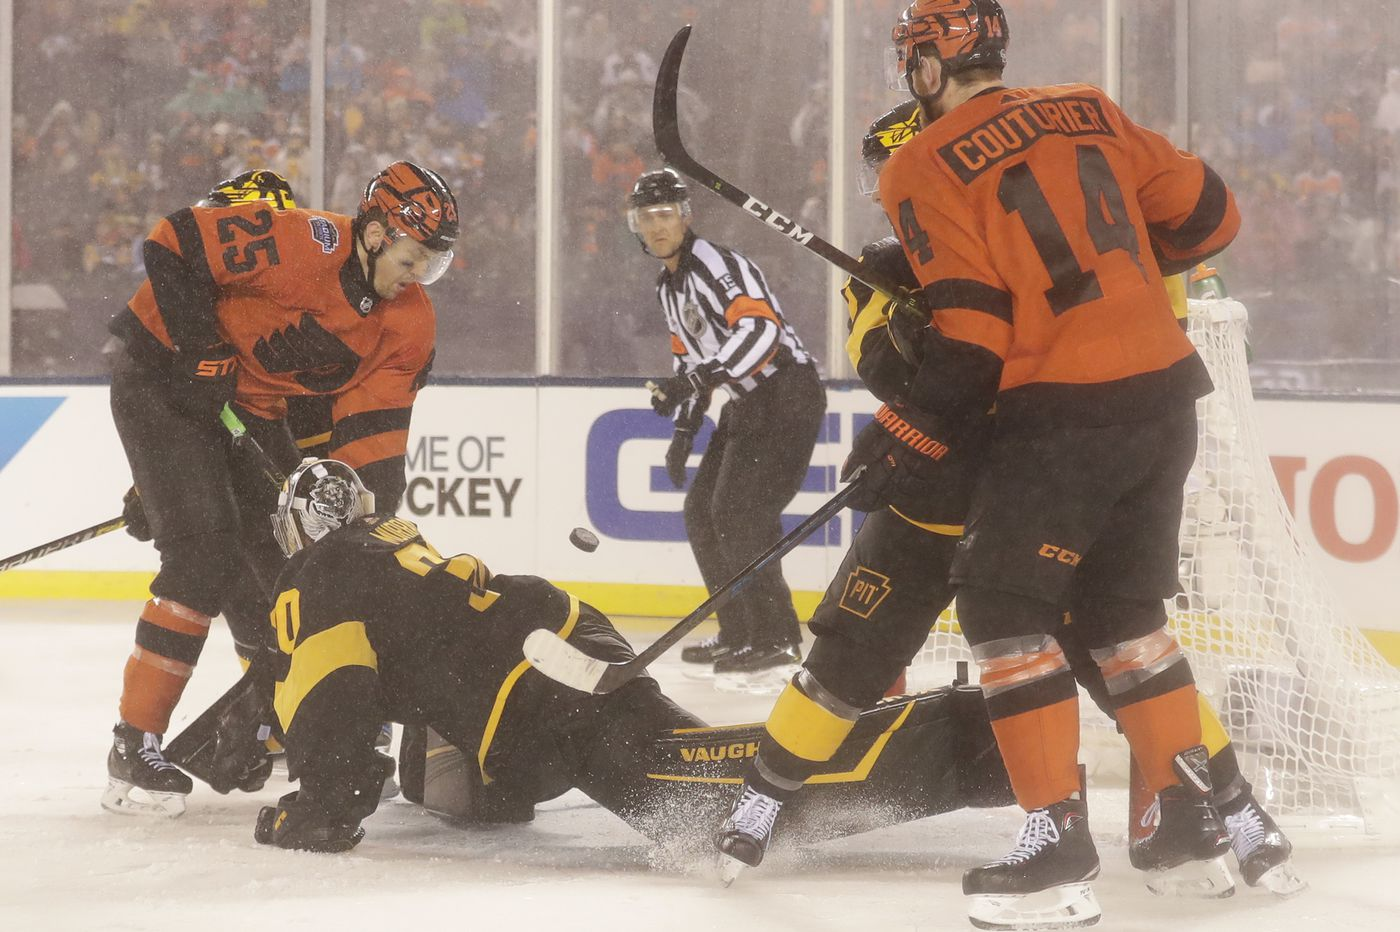 Goaltending, defense let down Flyers at worst time; face Penguins on Sunday night